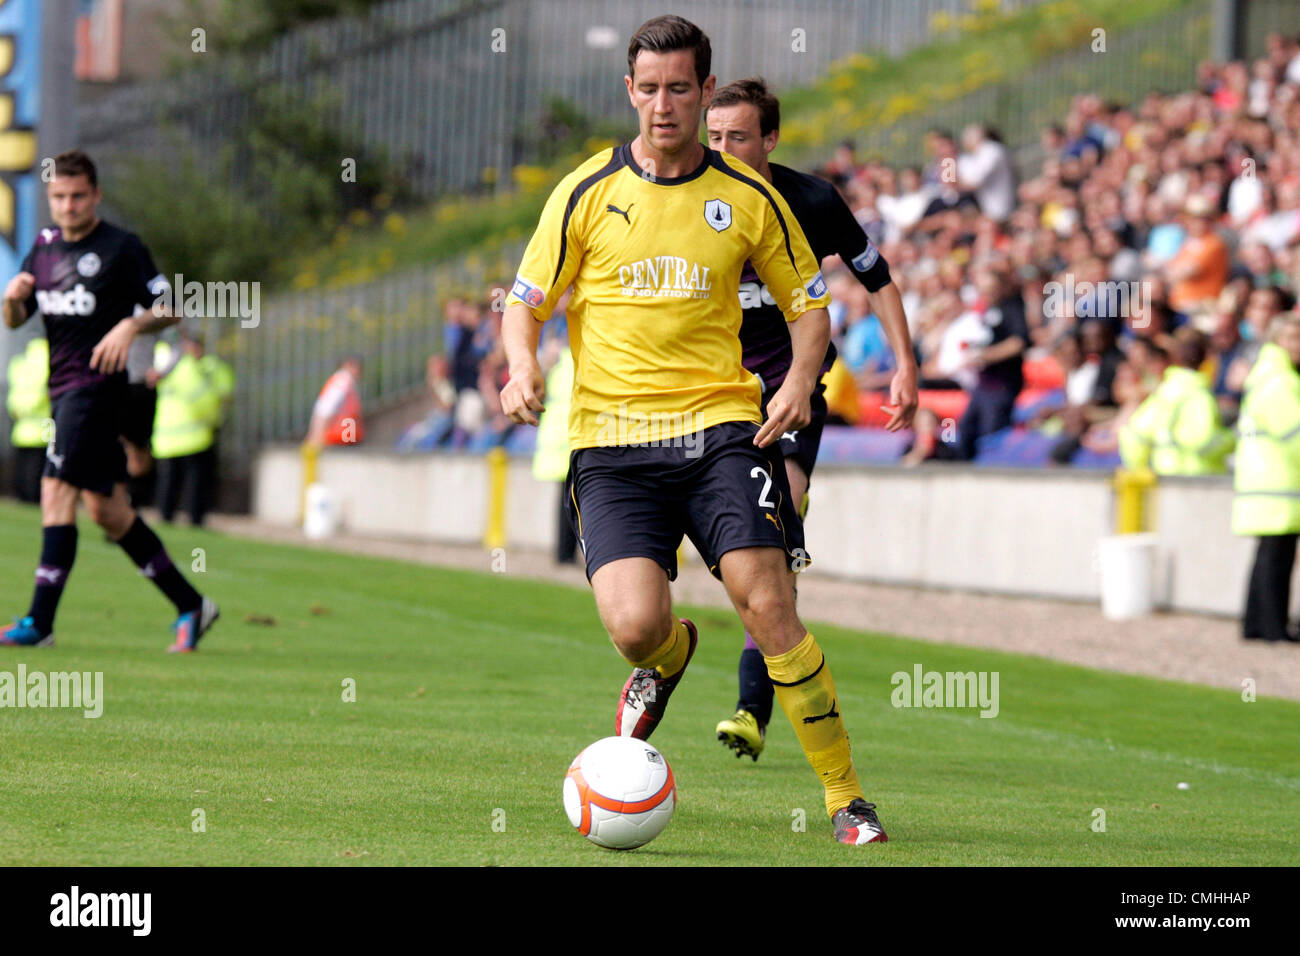 11th Aug 2012. 11.08.2012 Glasgow, Scotland. 2 Kieran Duffie in action during the Scottish Football League Division - Stock Image